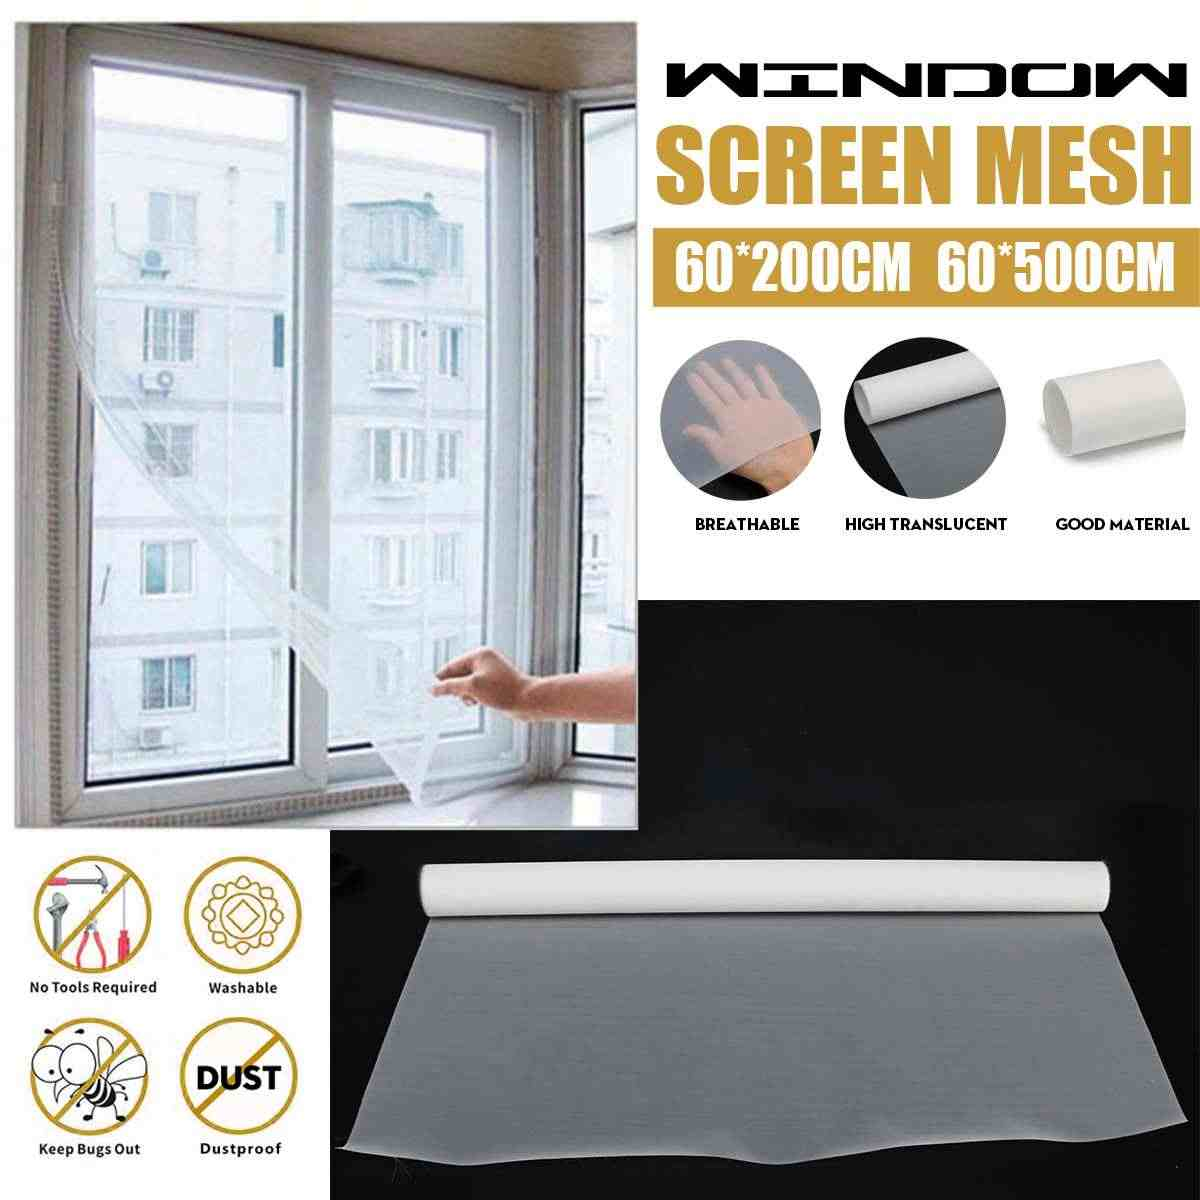 2/5m Super Dense Indoor Window Screen Mesh Dustproof Insect Fly Curtain Anti PM2.5 Dust Mosquito Door Screen Denser Net Curtain